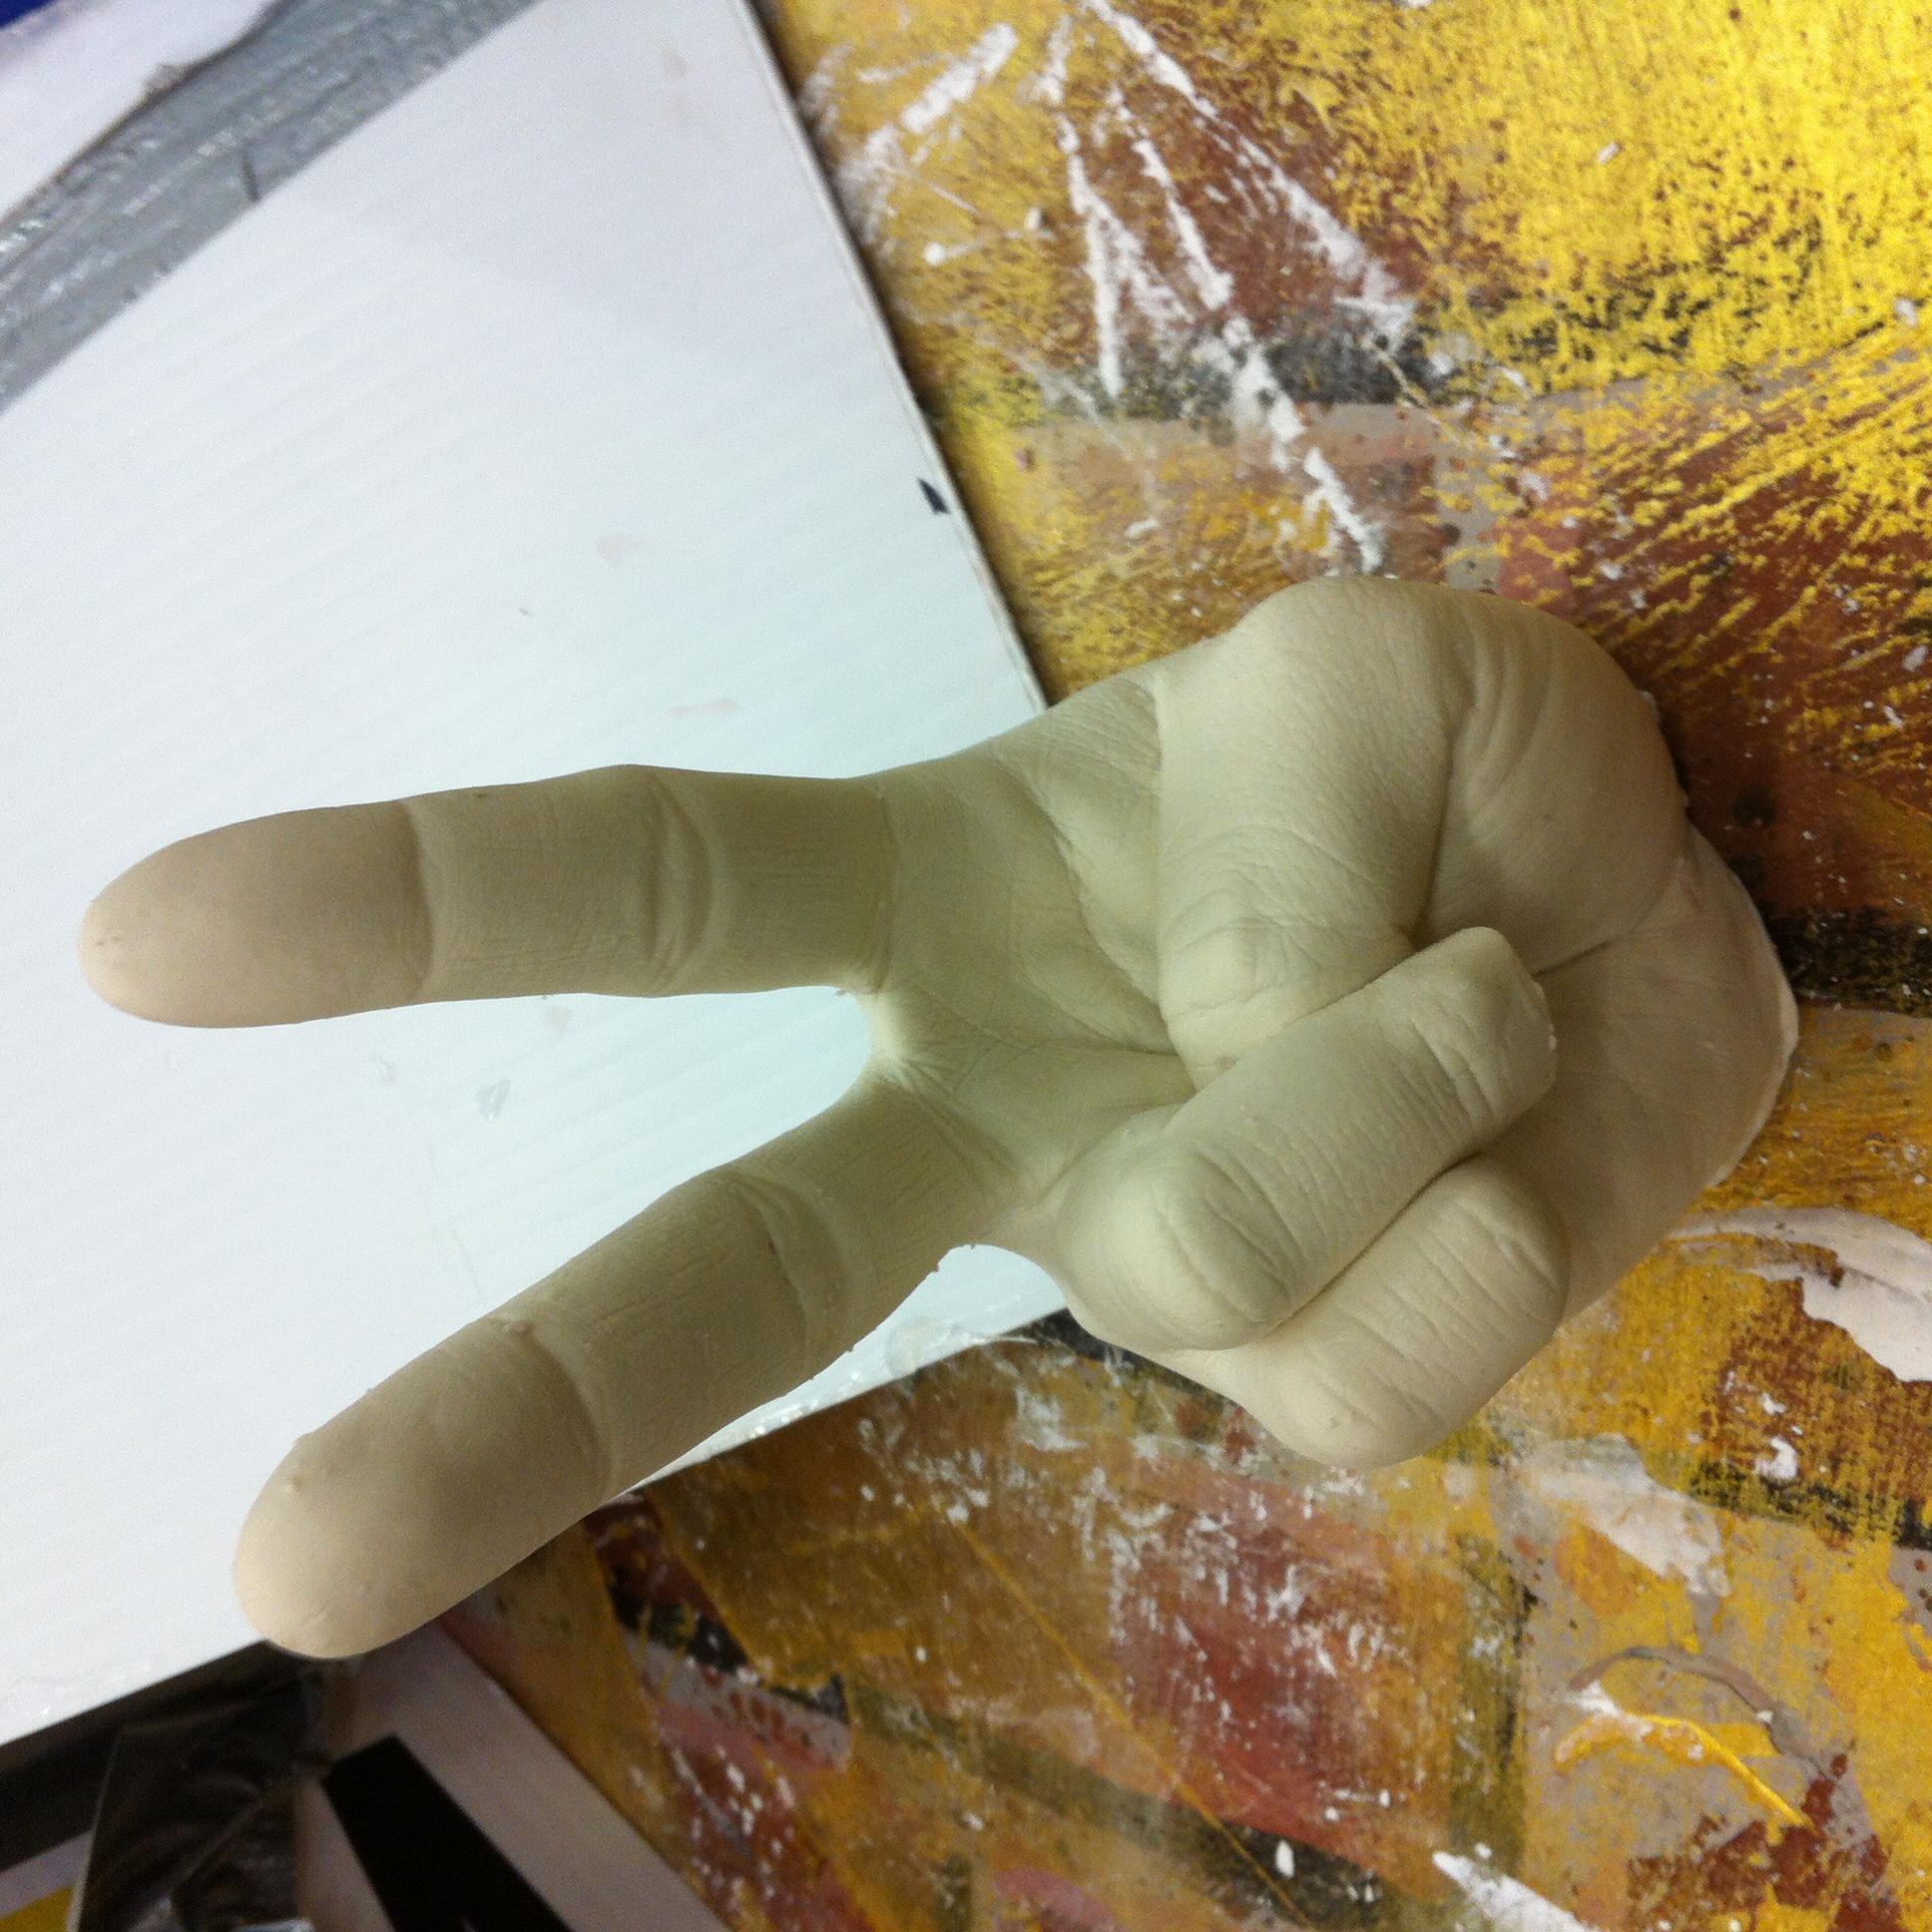 Molding & Casting Project - Plaster hand